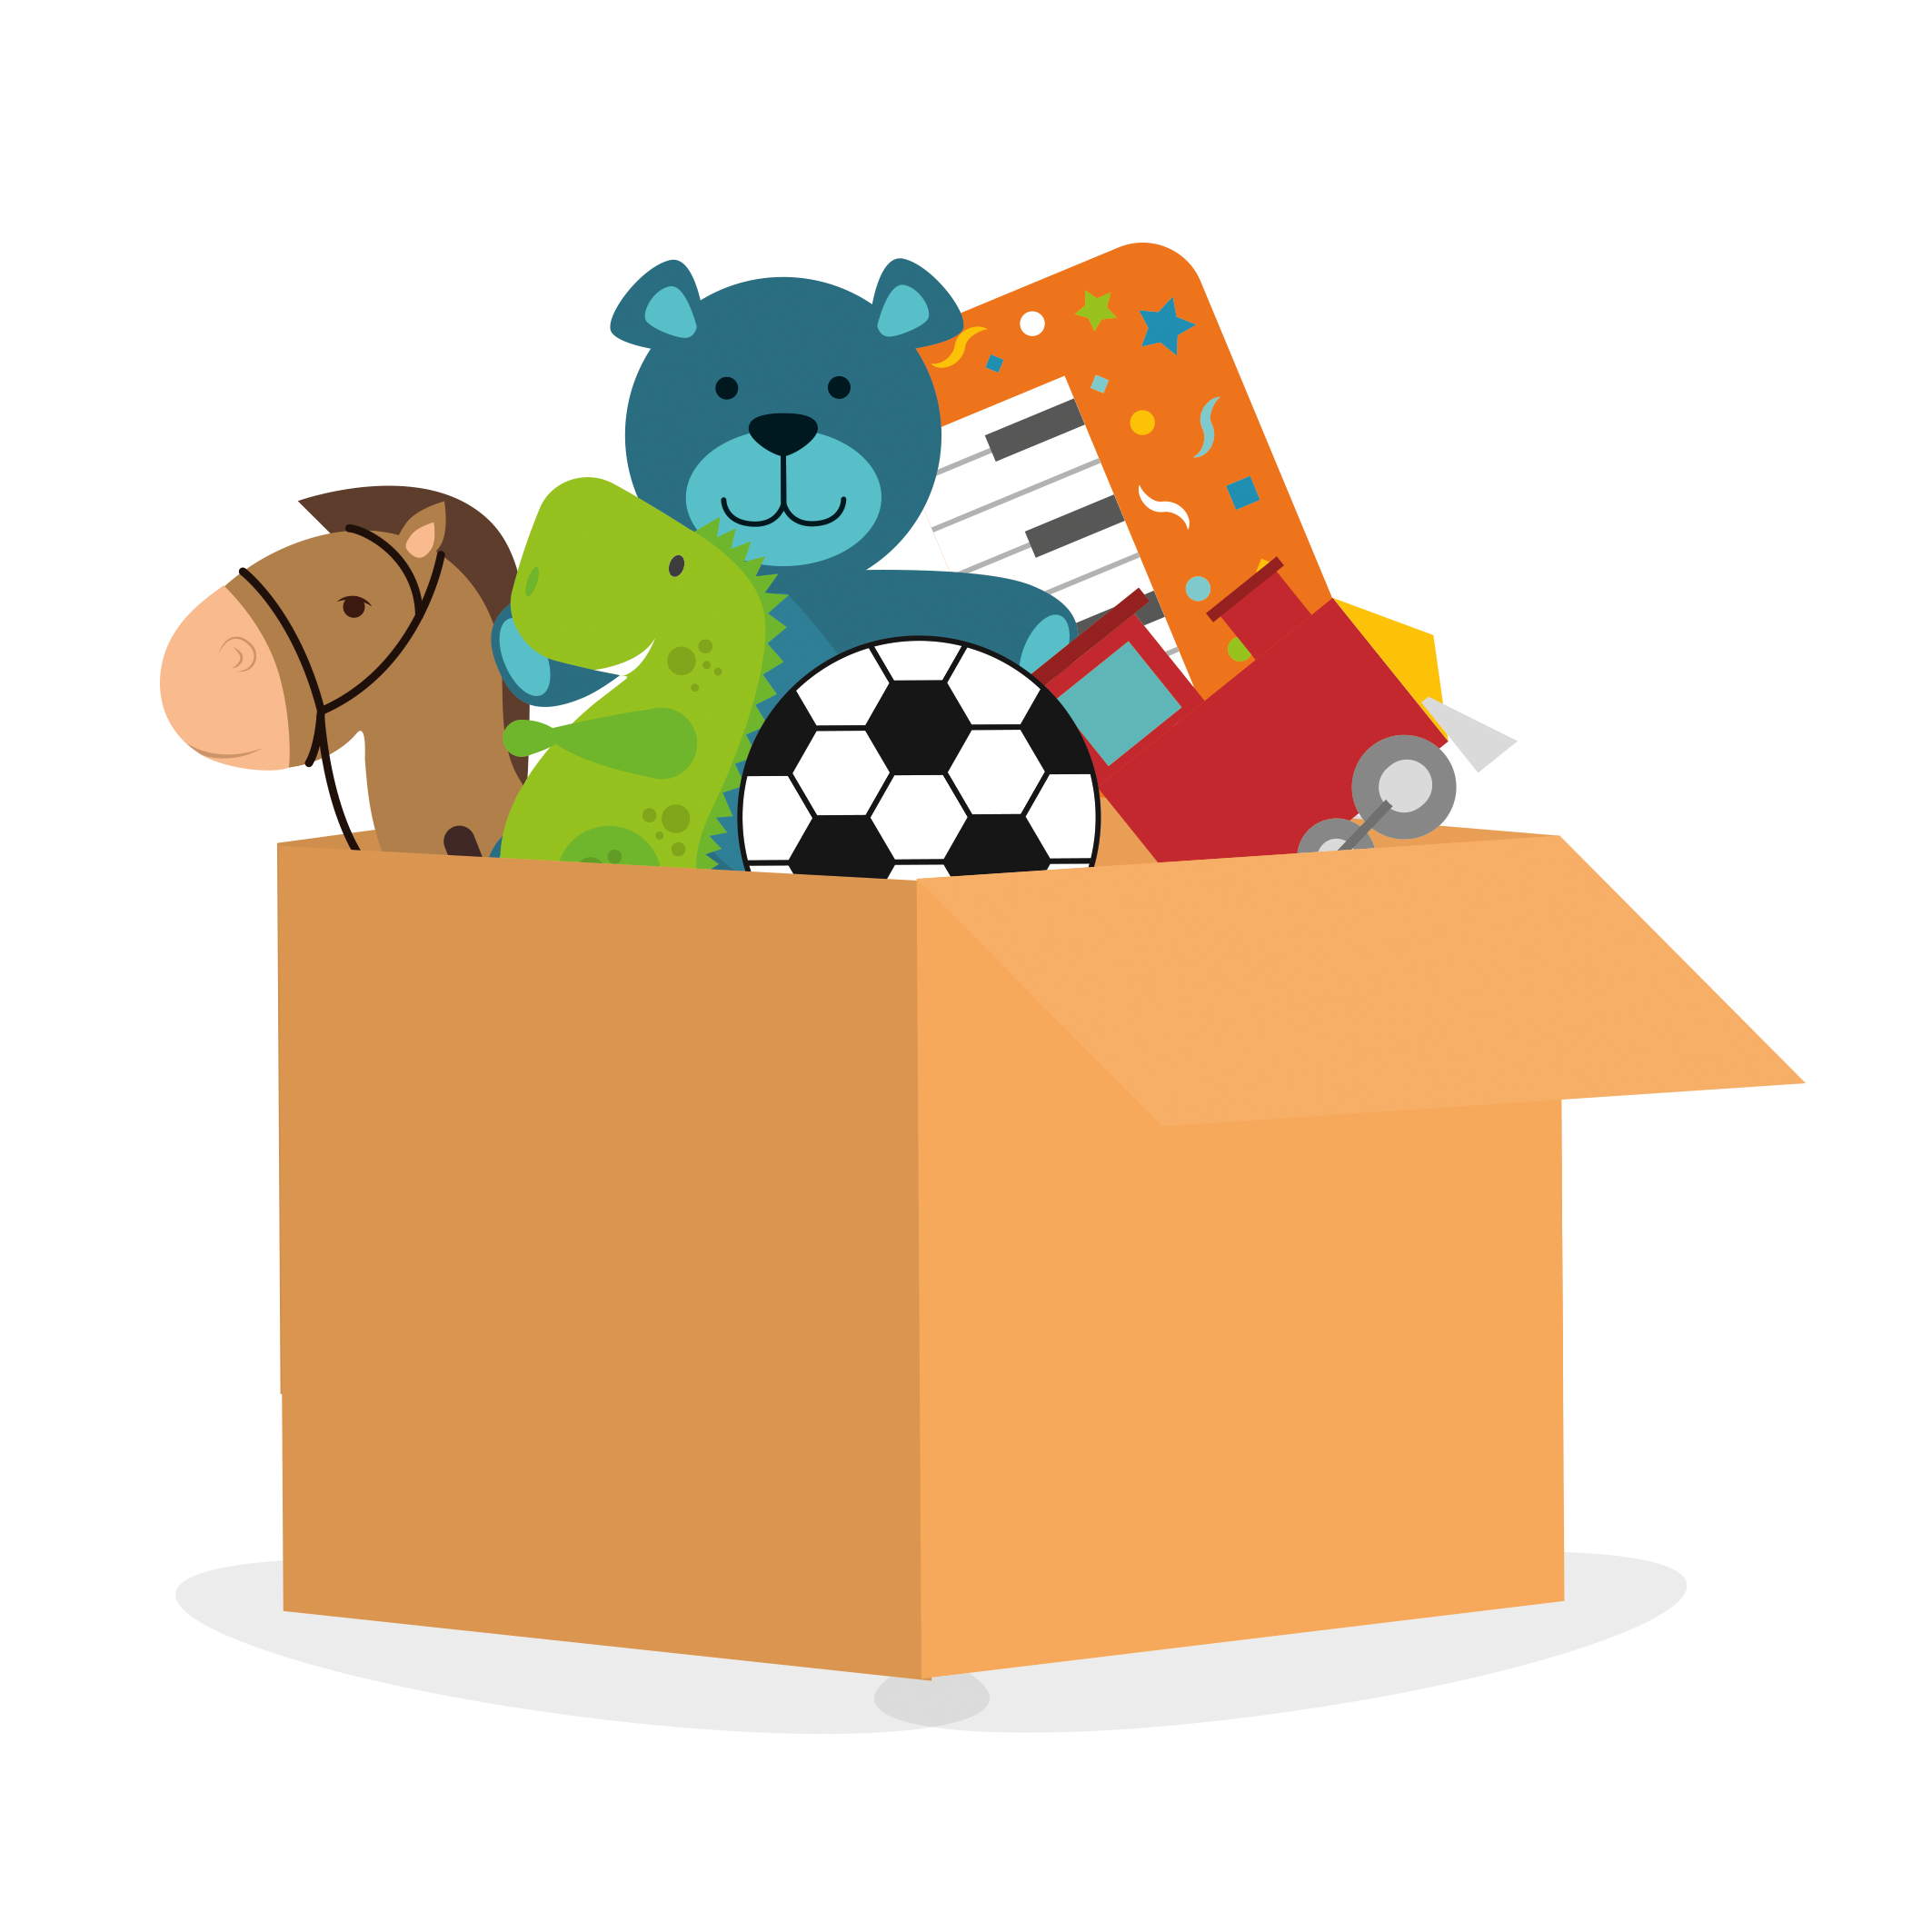 Toy Box Png & Free Toy Box.png Transparent Images #10665 ...